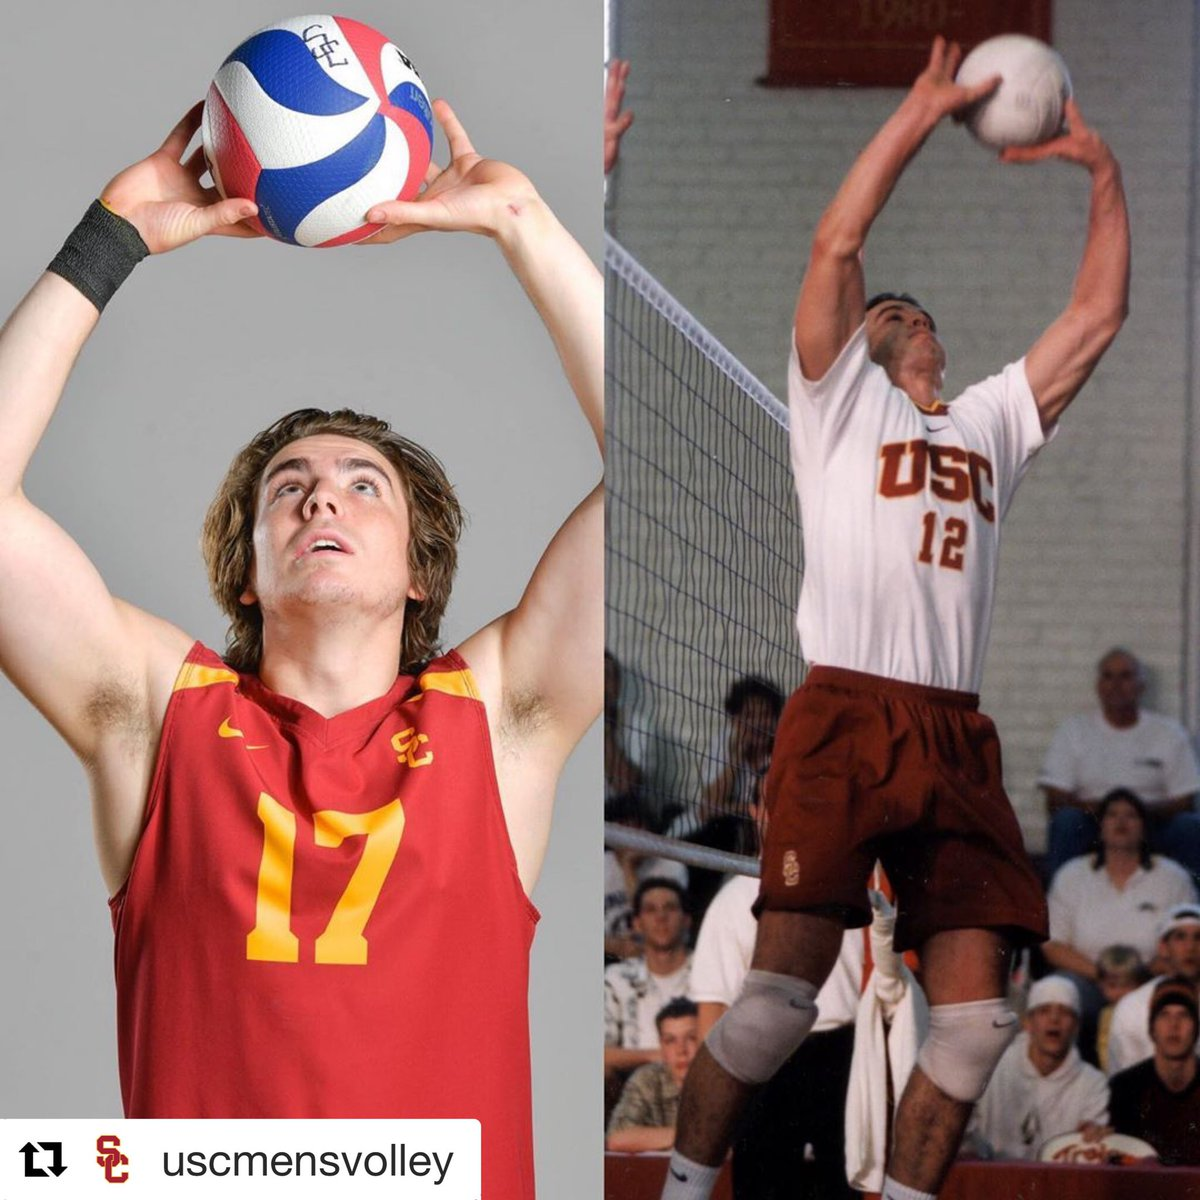 Donald Suxho On Twitter Follow Usc Men S Volleyball Instagram Today My Son Shane Me Will Share Some Cool Stories Time Flies Fighton Trojanfamily Usc Familylegacy Https T Co Ic1c6fjuhr